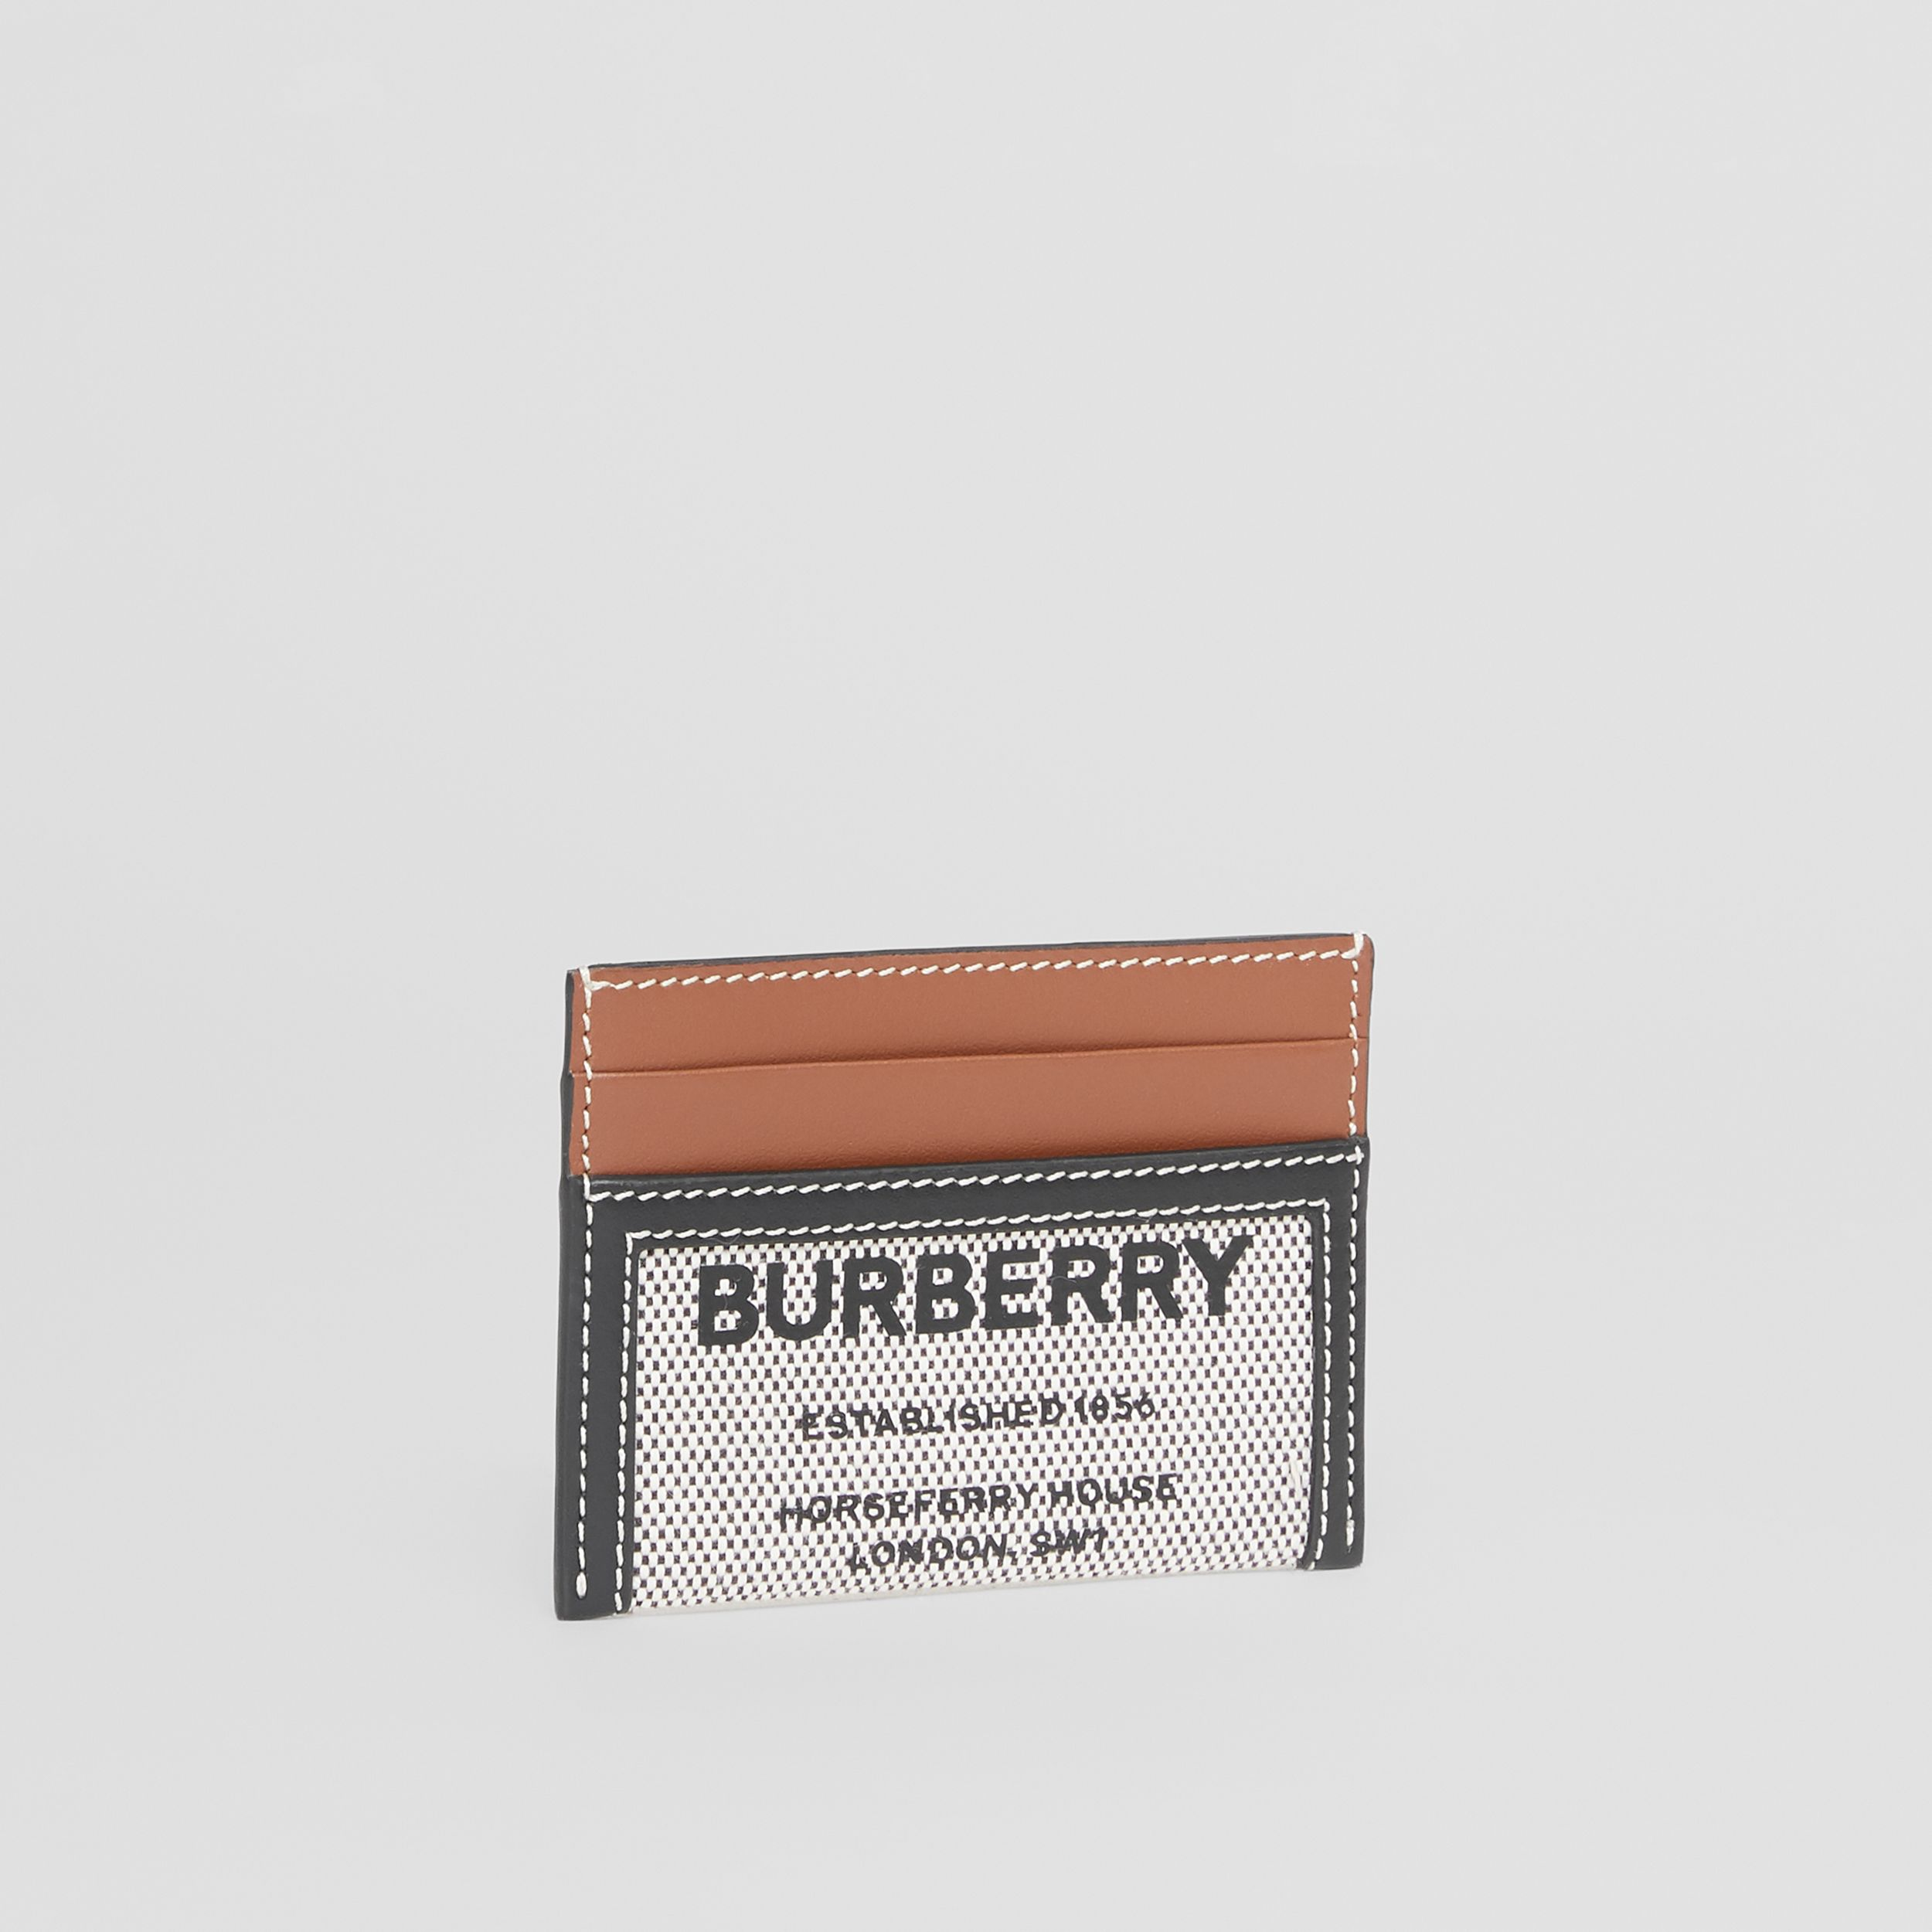 Horseferry Print Cotton Canvas and Leather Card Case in Black/tan - Women | Burberry - 4